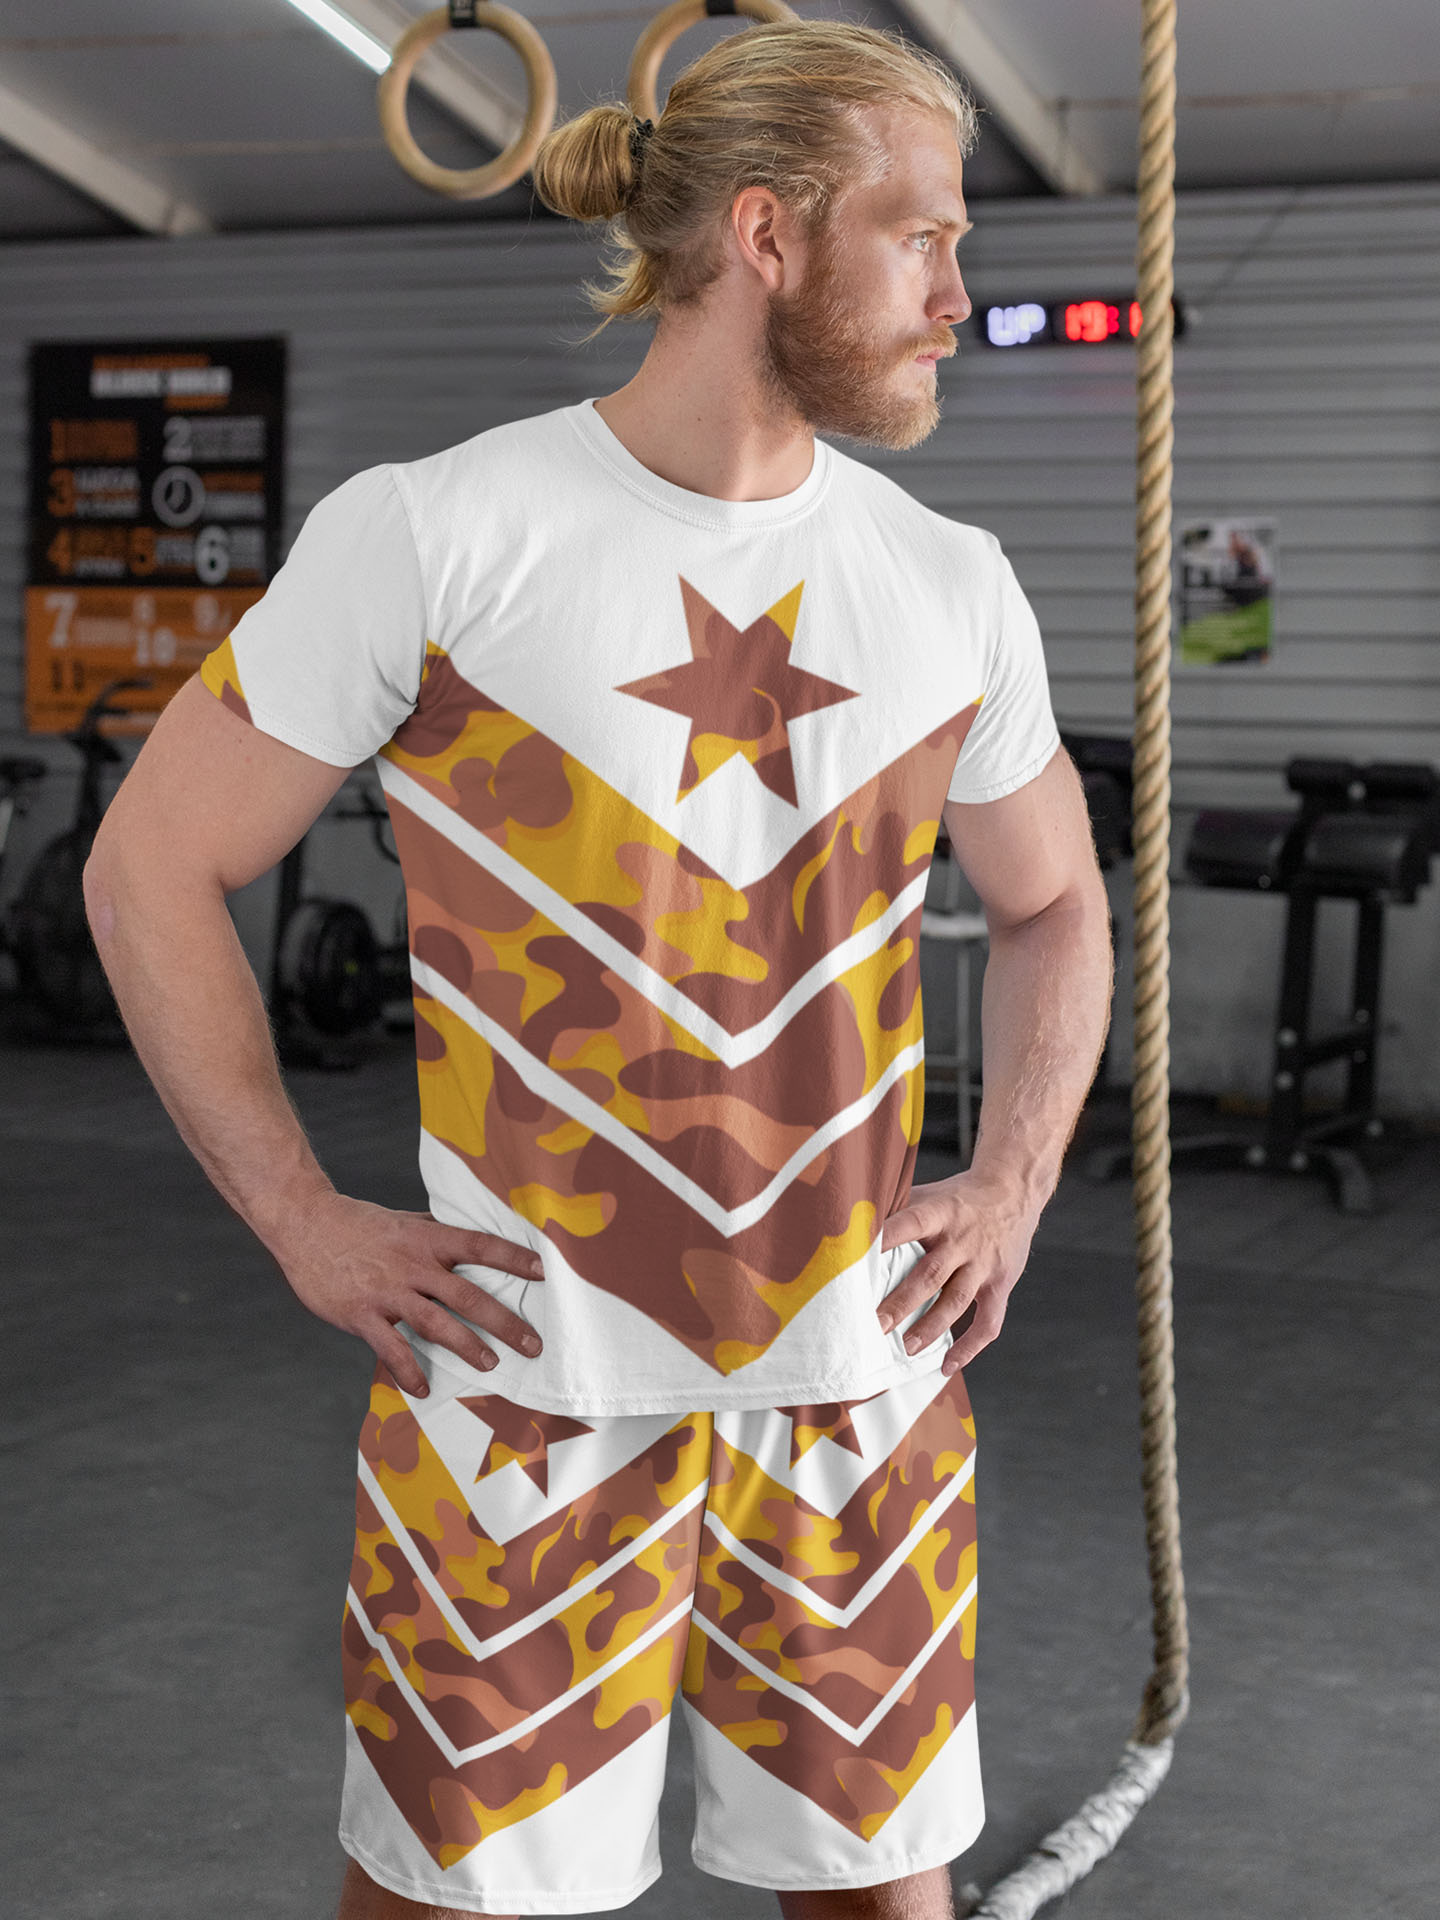 Spredshirt-Prints-Trailfire_0001_t-shirt-and-shorts-mockup-featuring-a-fit-man-33058